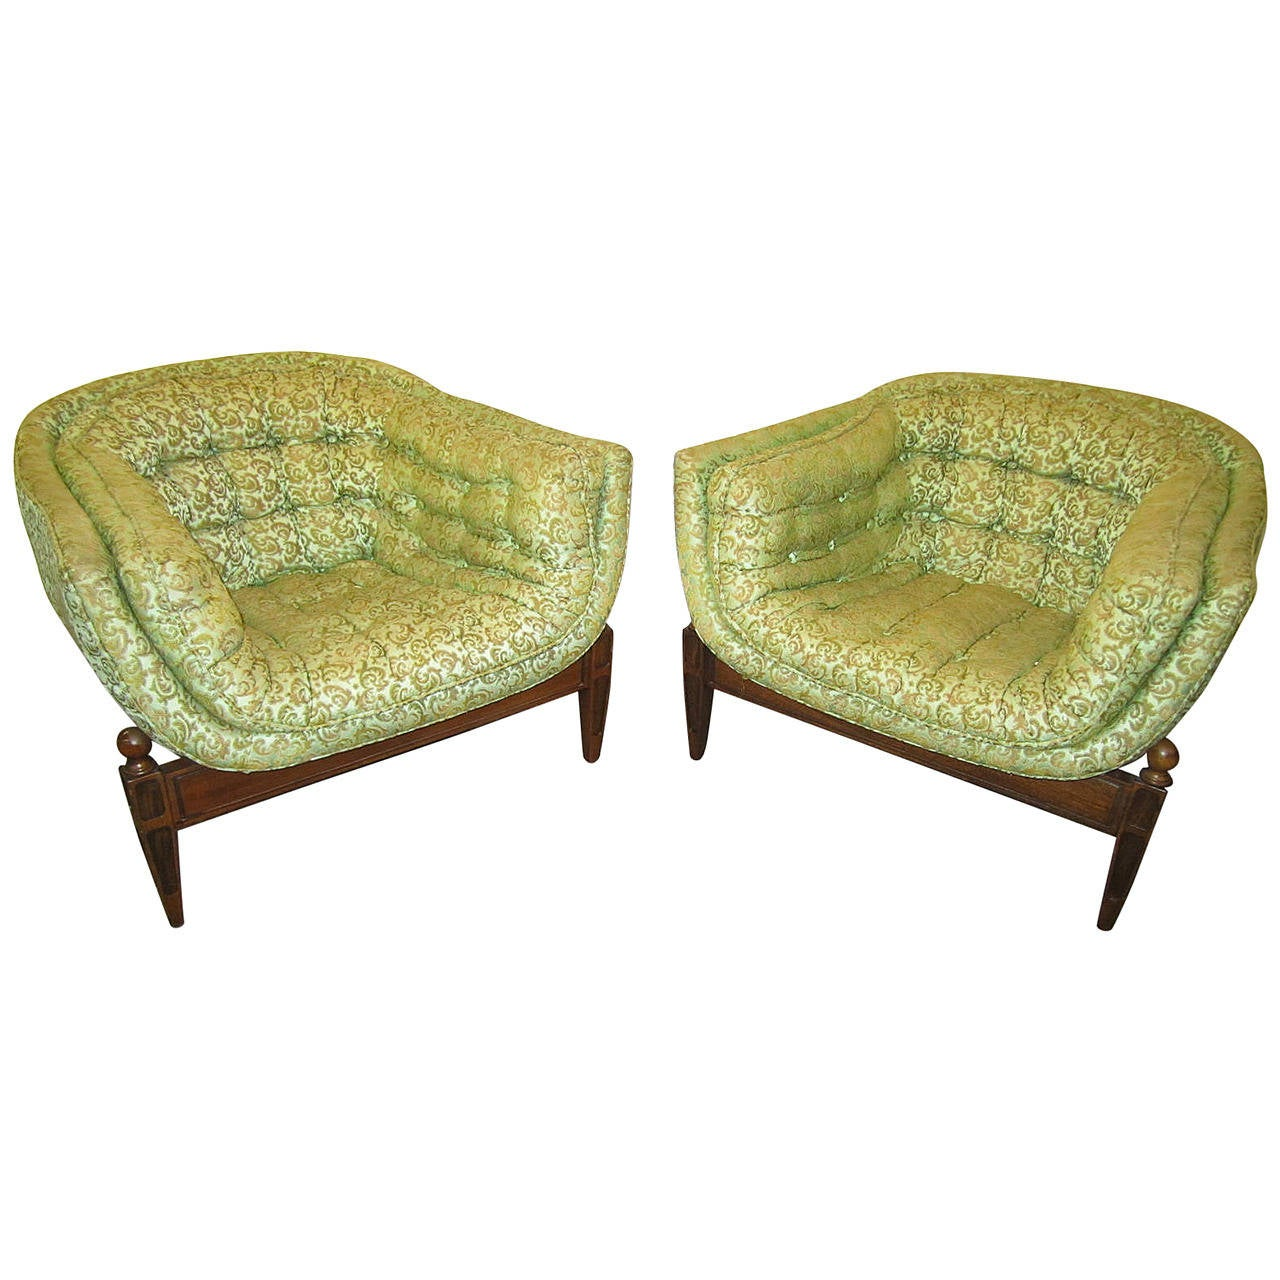 Genial Lovely Pair Of Mid Century Modern Tufted 3 Legged Lounge Chair For Sale